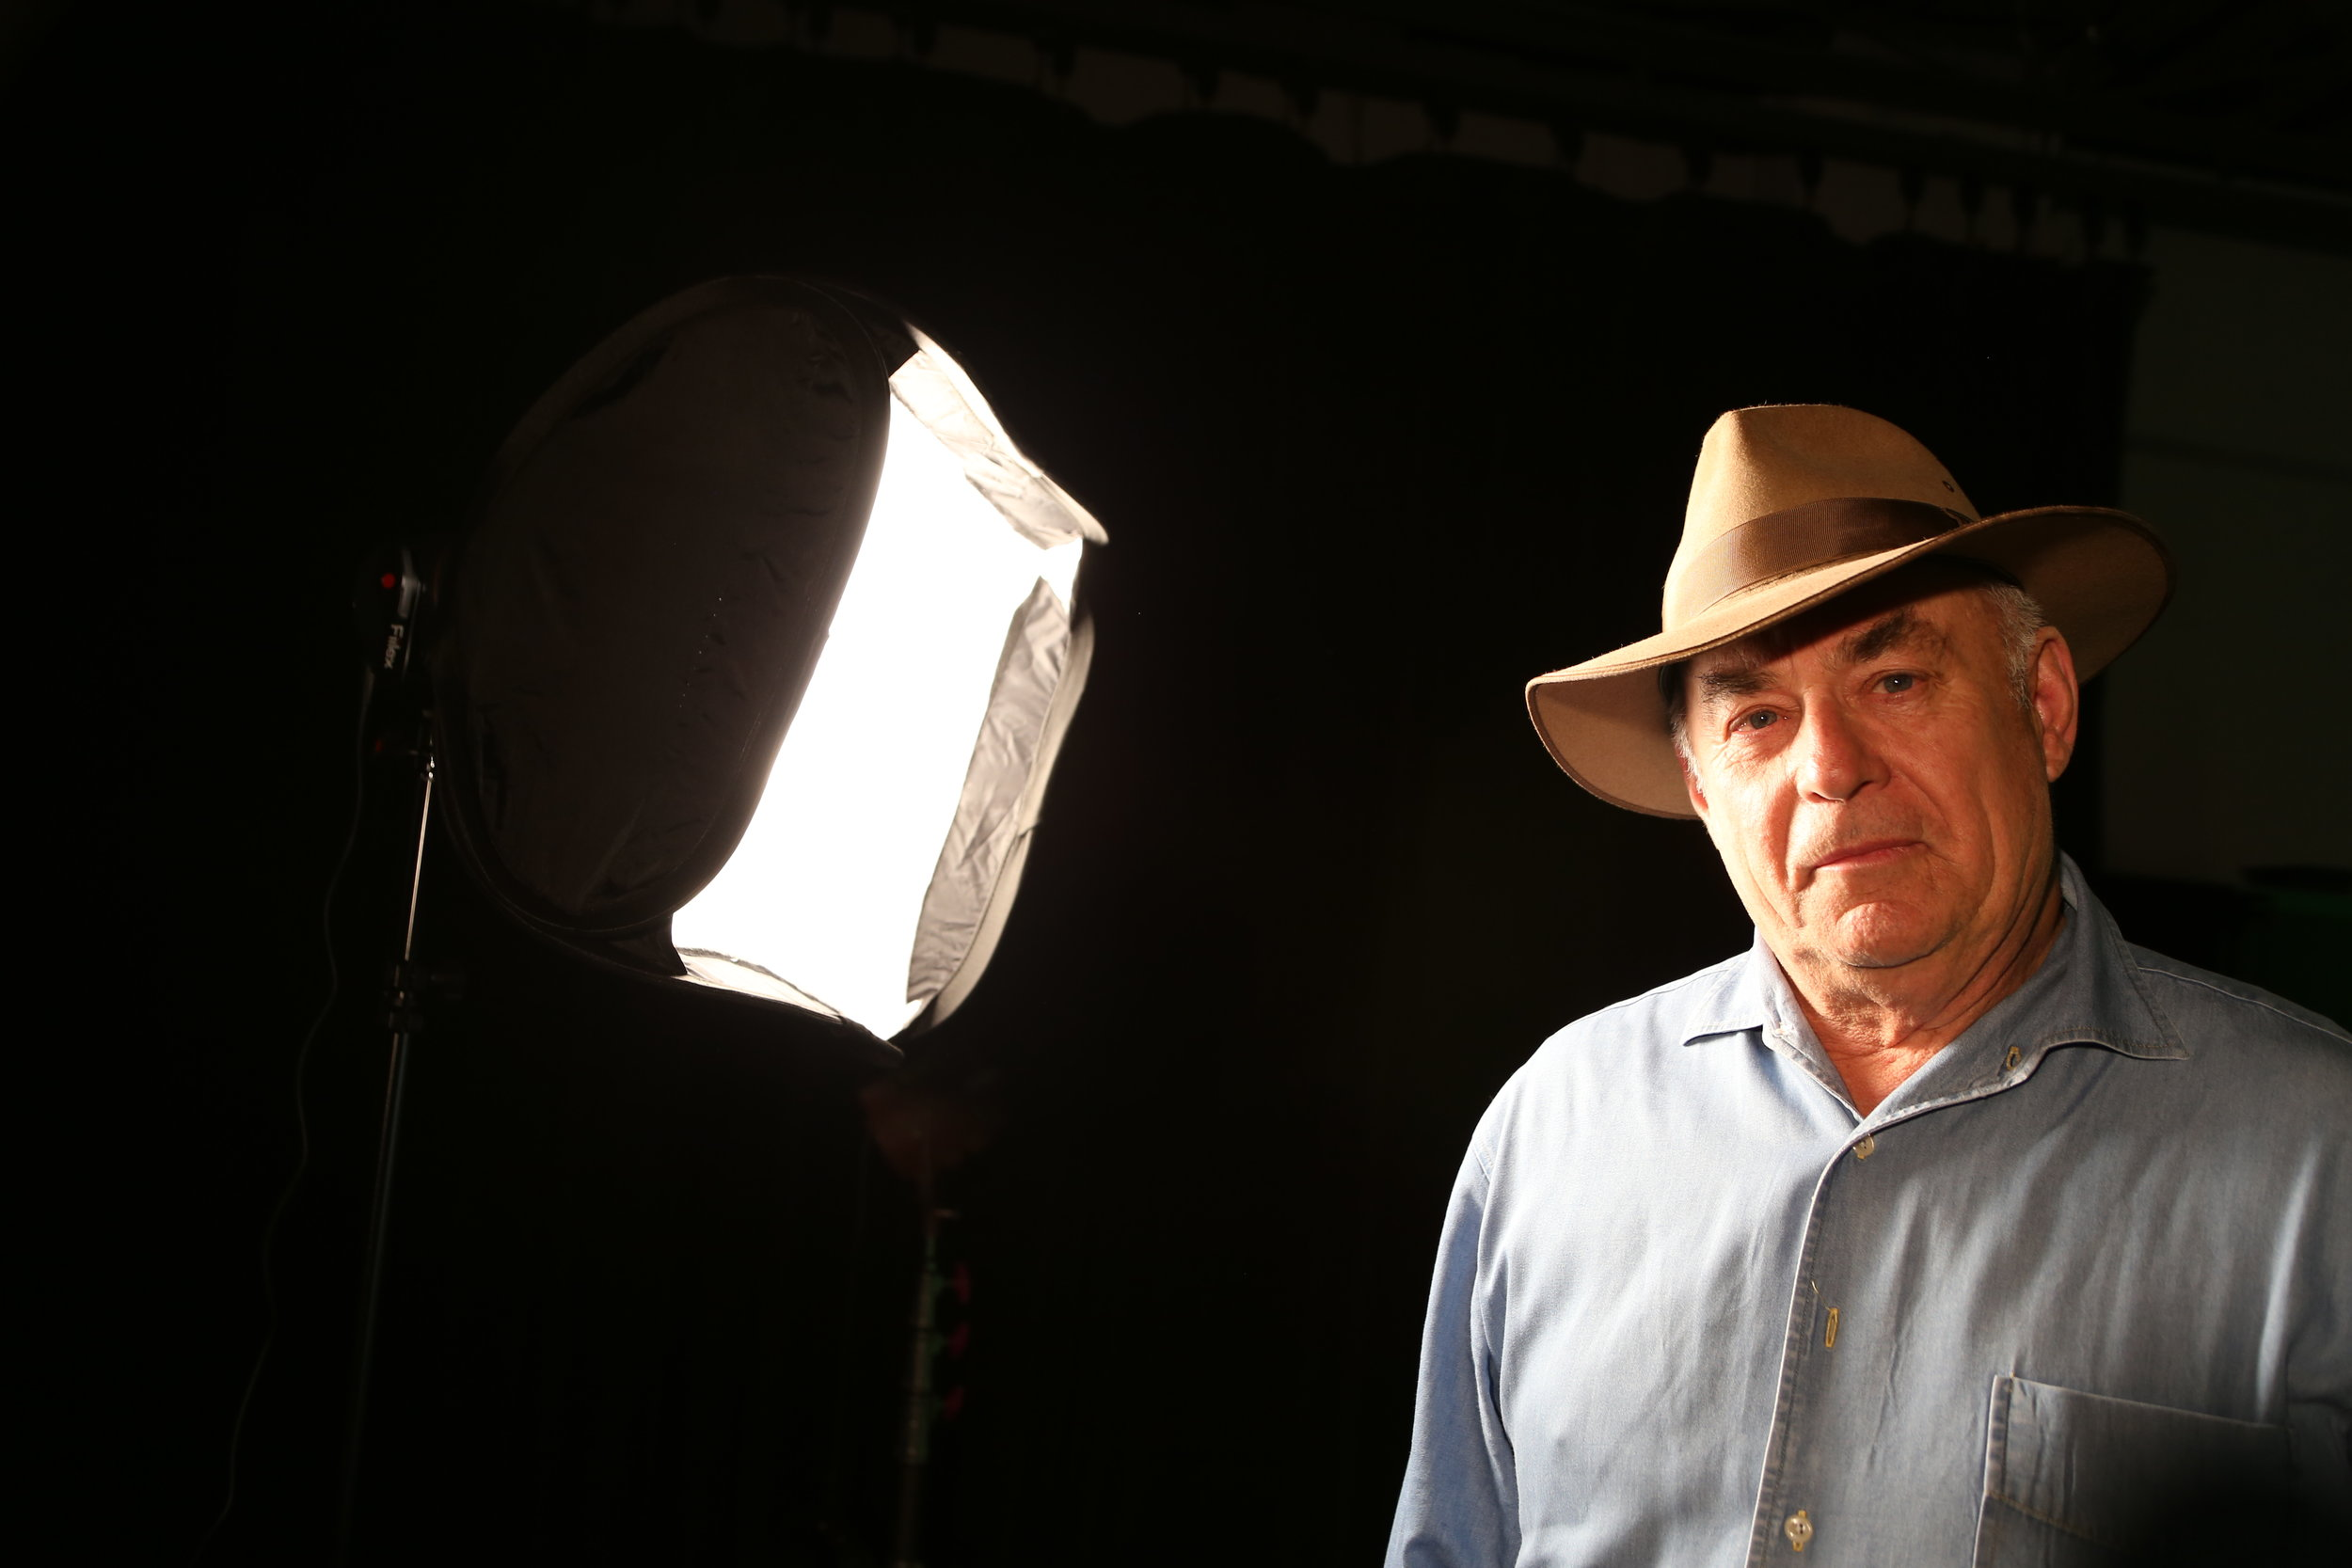 Filmmaker William Farley